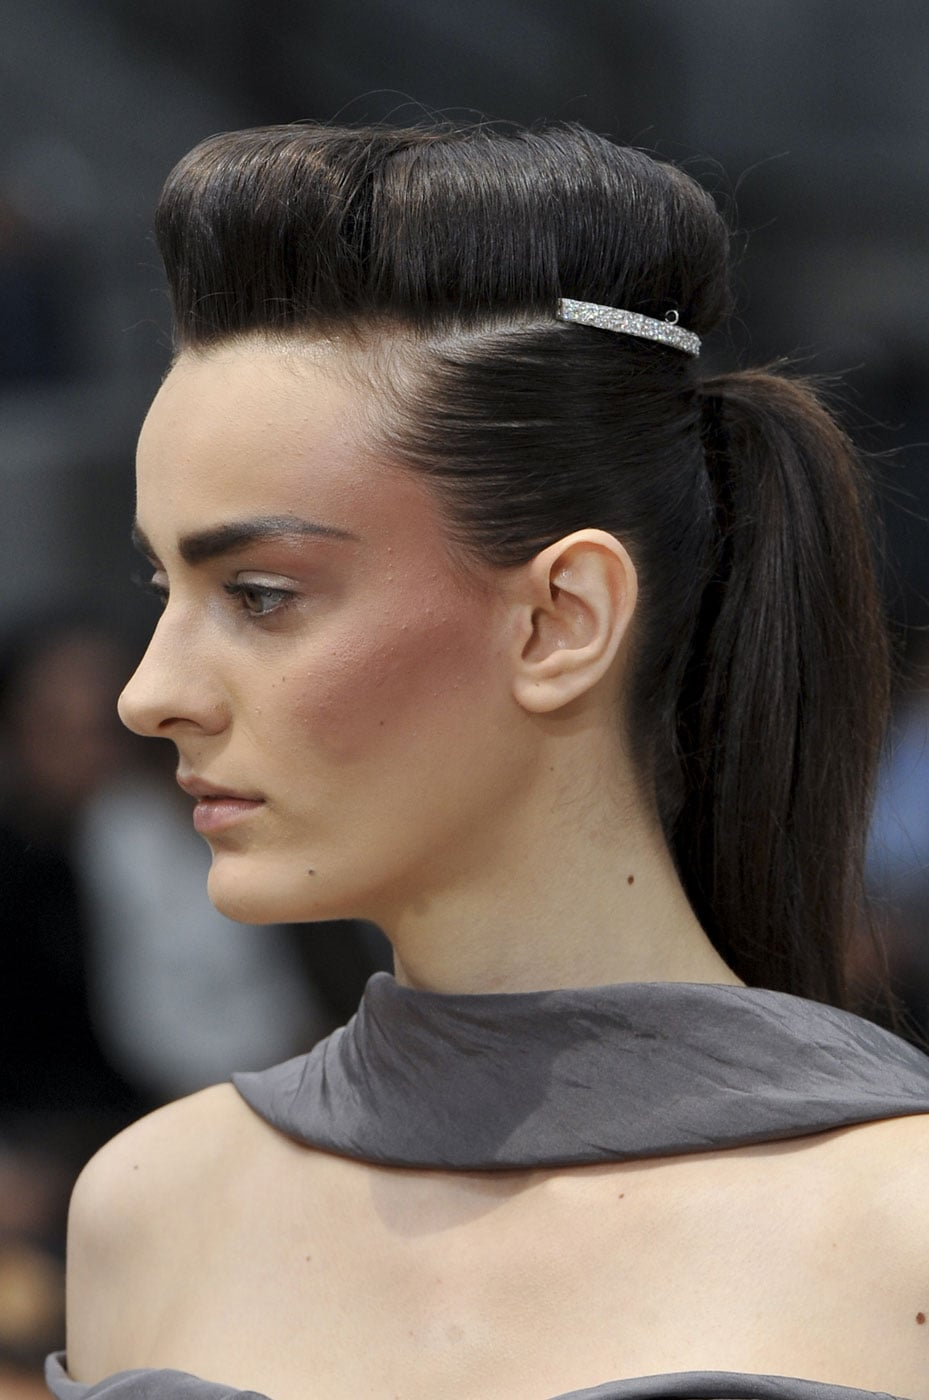 The Hair At Chanel Was A Pompadour And Ponytail Combination That Was Check Out All The Hair And Makeup Looks From The Haute Couture Runways Popsugar Beauty Photo 26